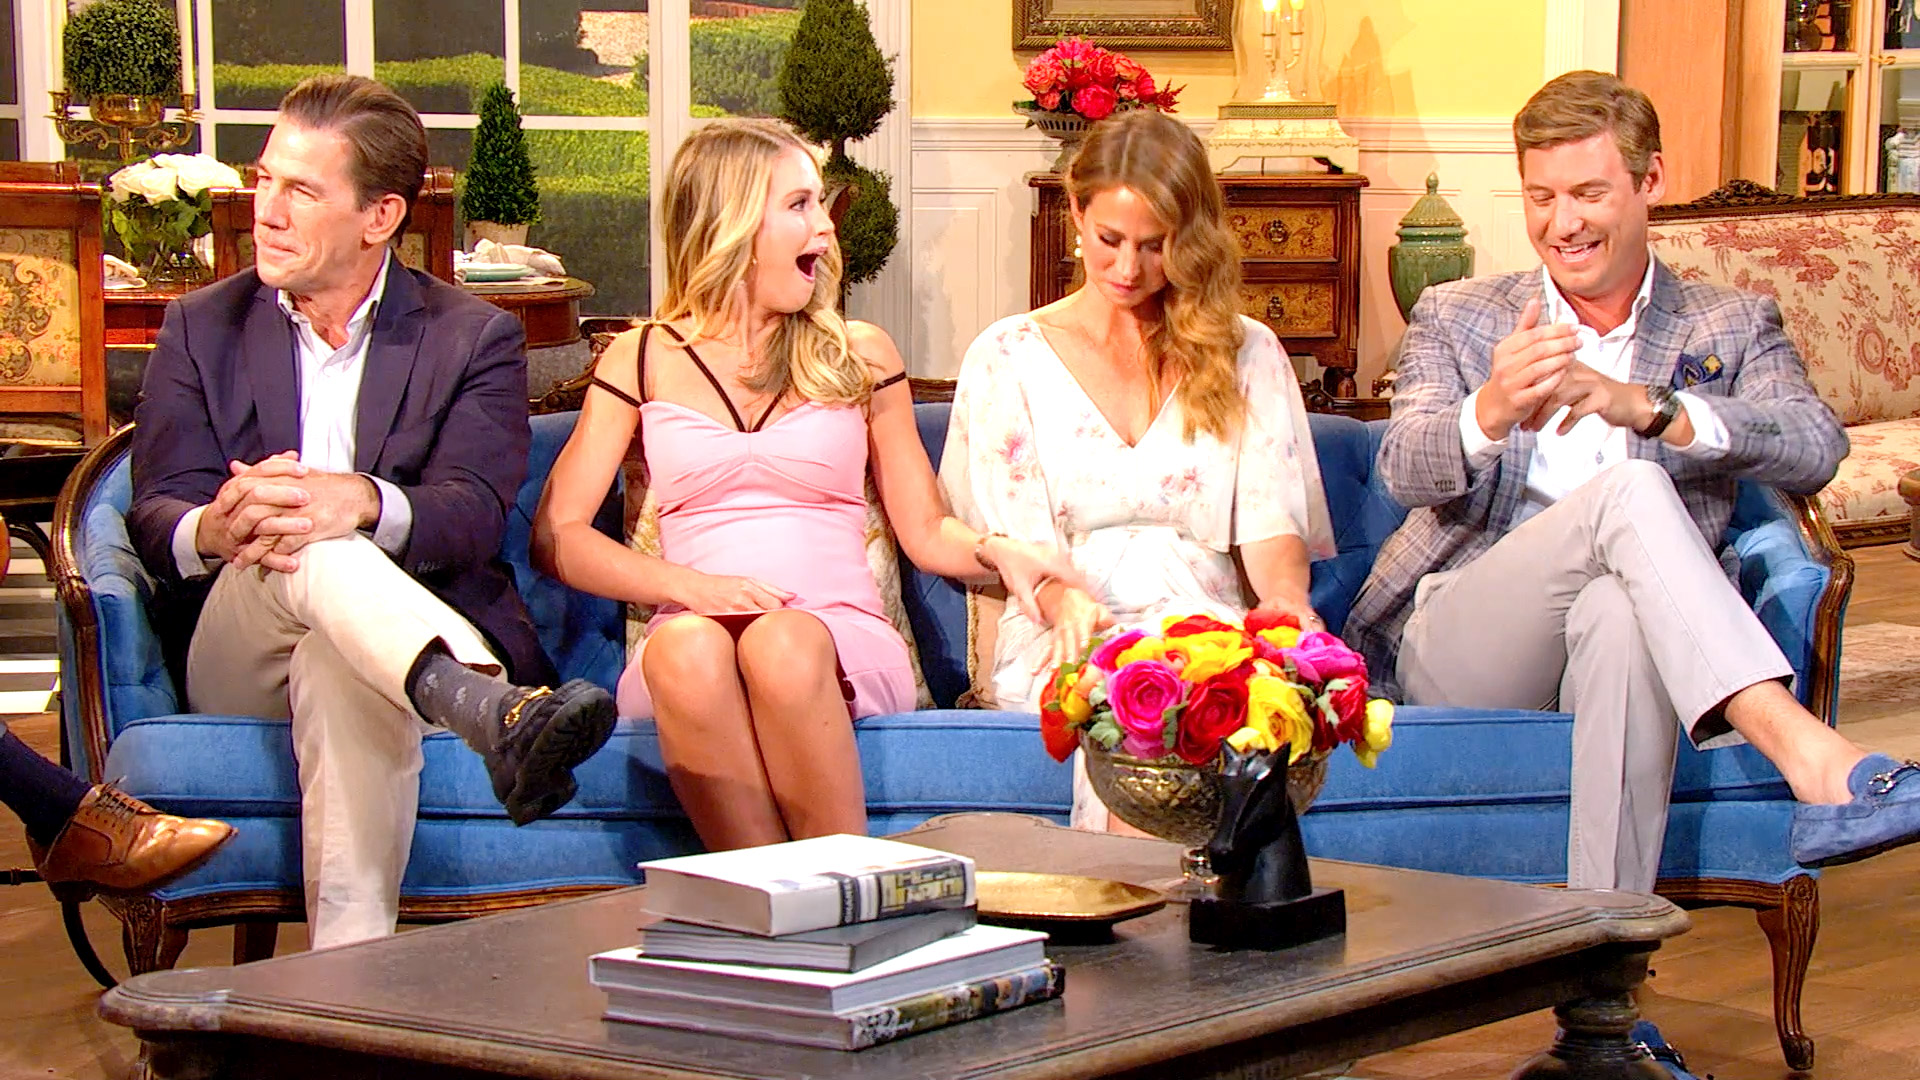 Your First Look at the Southern Charm Season 4 Reunion